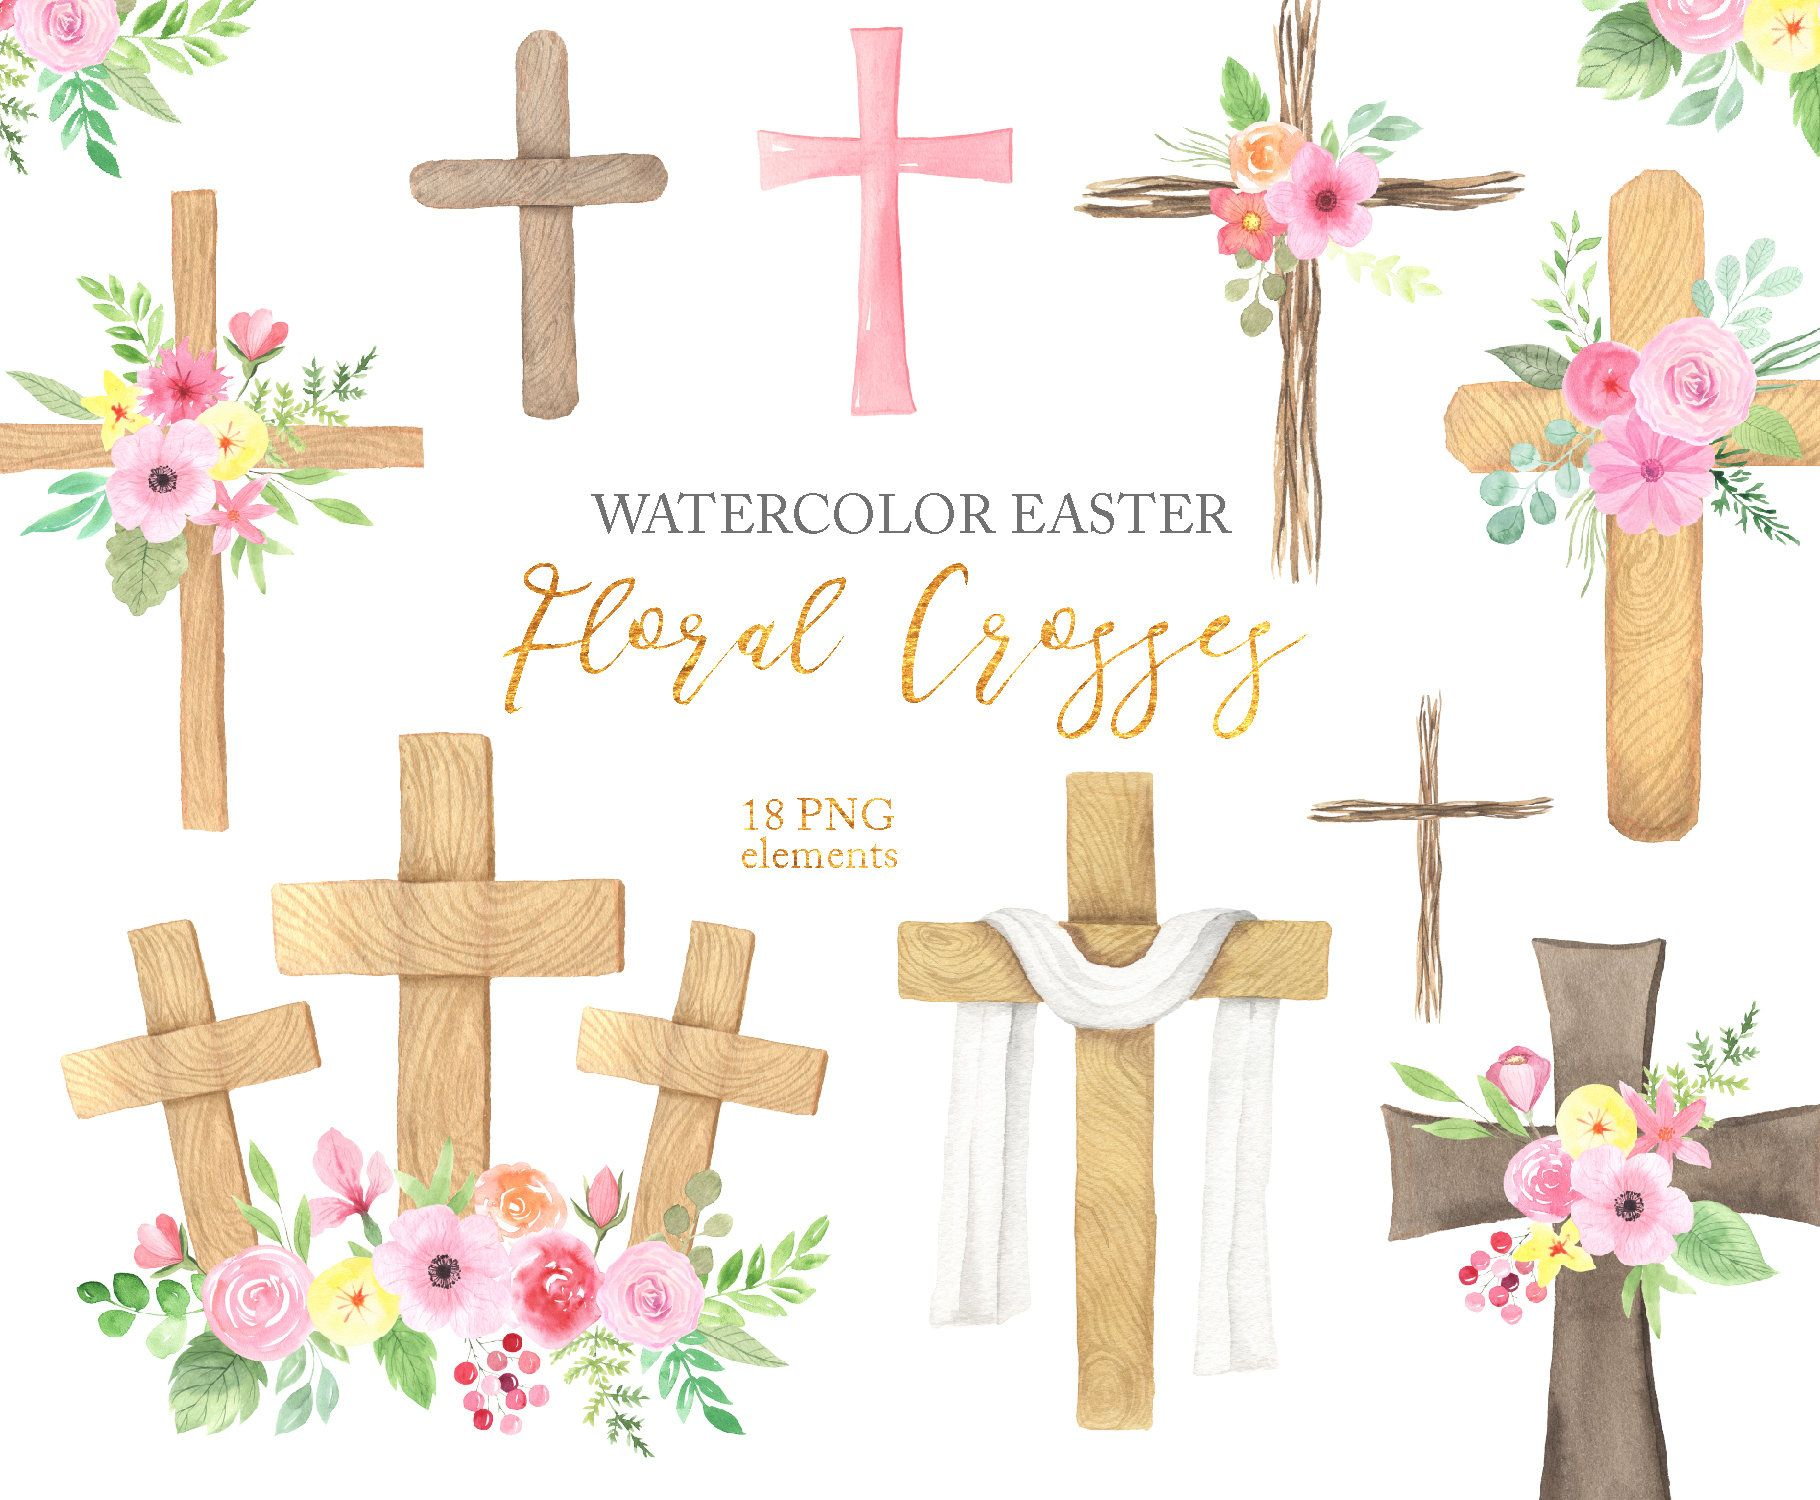 Watercolor Easter Cross Clipart Spring Wood Crosses With Etsy In 2021 Easter Cross Clip Art Easter Clipart